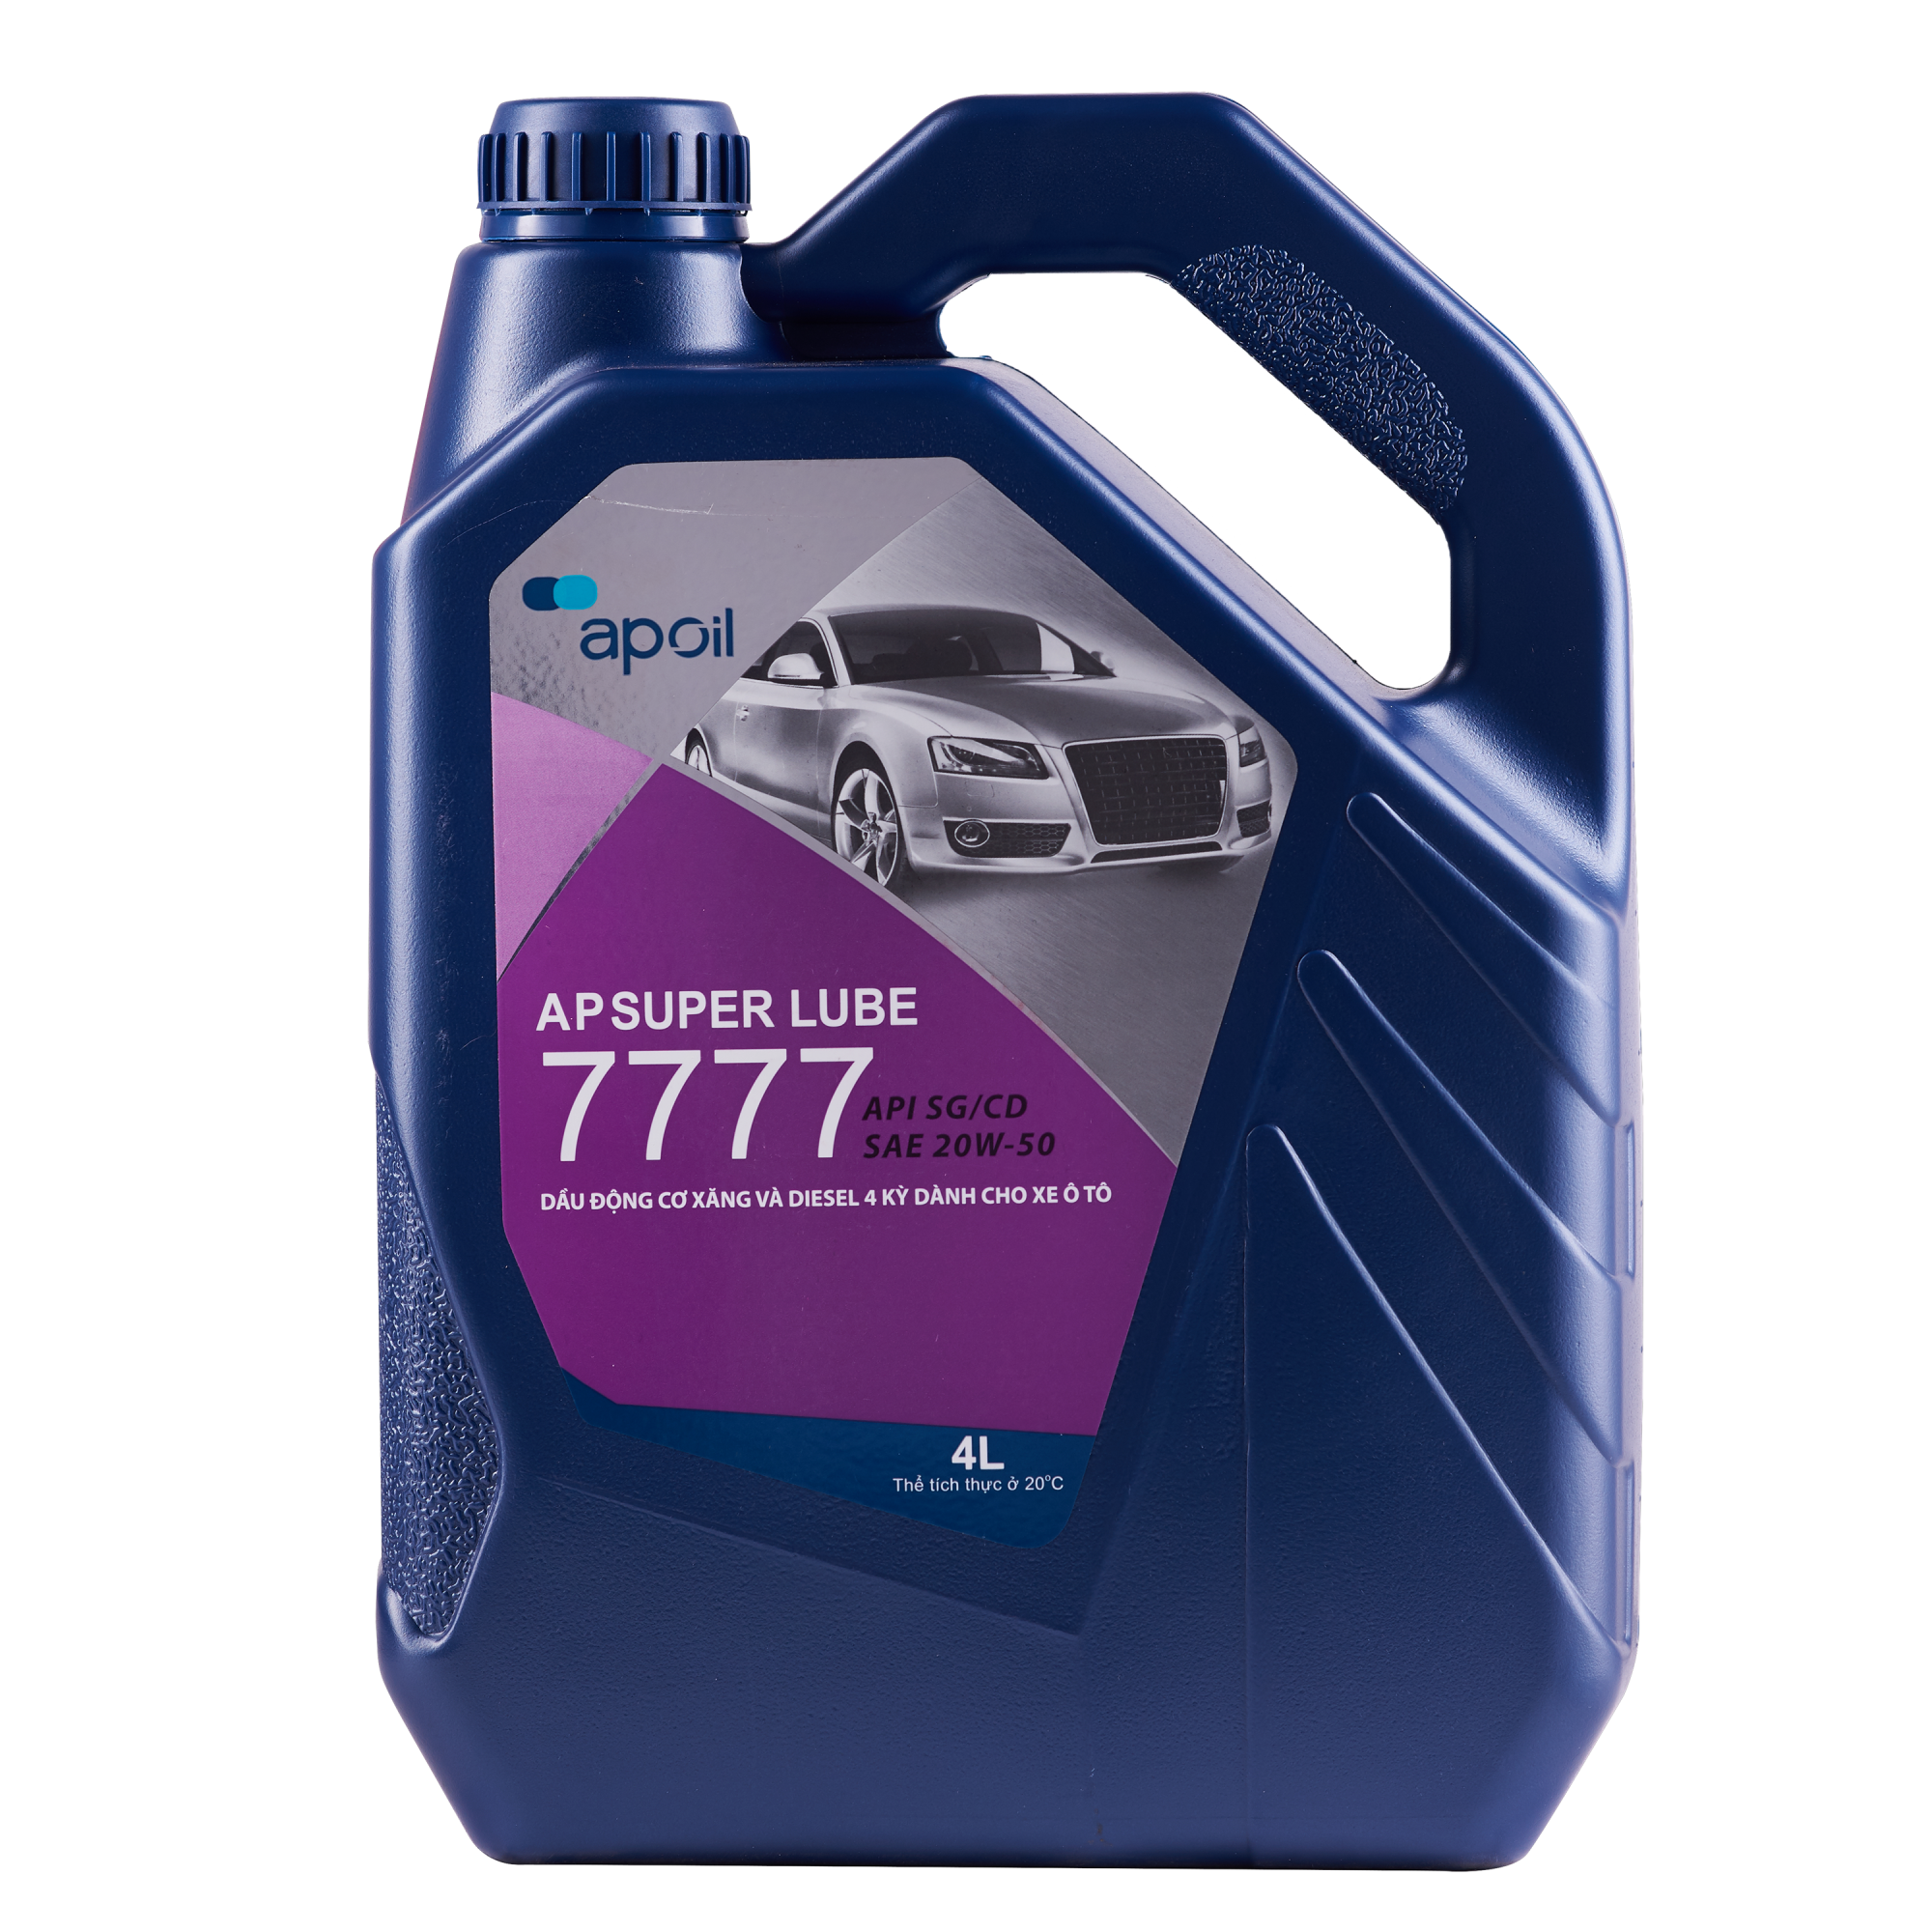 AP SUPER LUBE 7777 SG/CD 20W-50